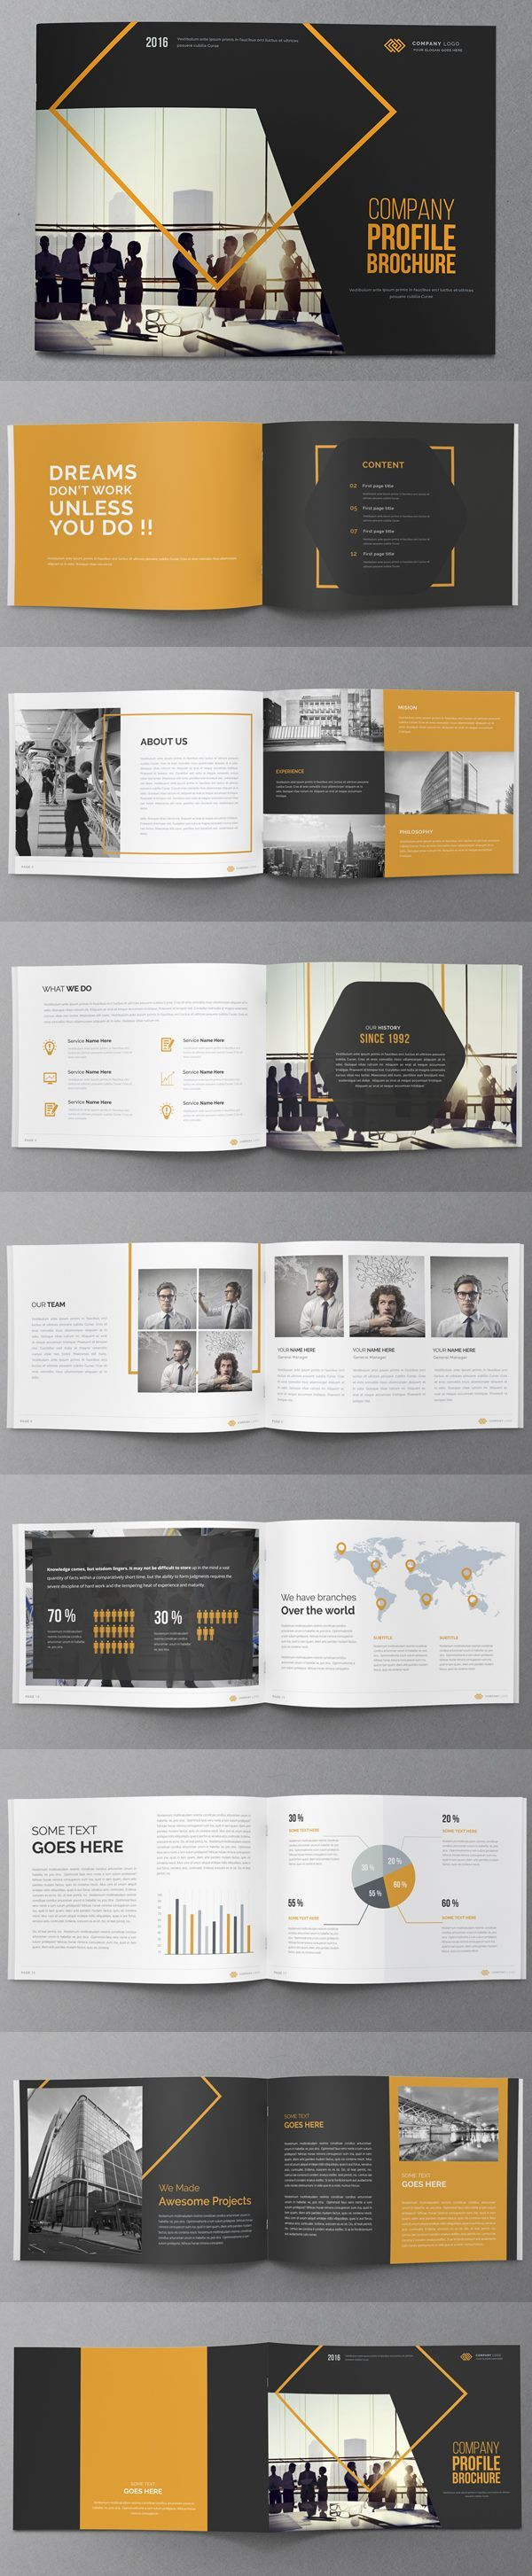 Best 25+ Design portfolio layout ideas on Pinterest